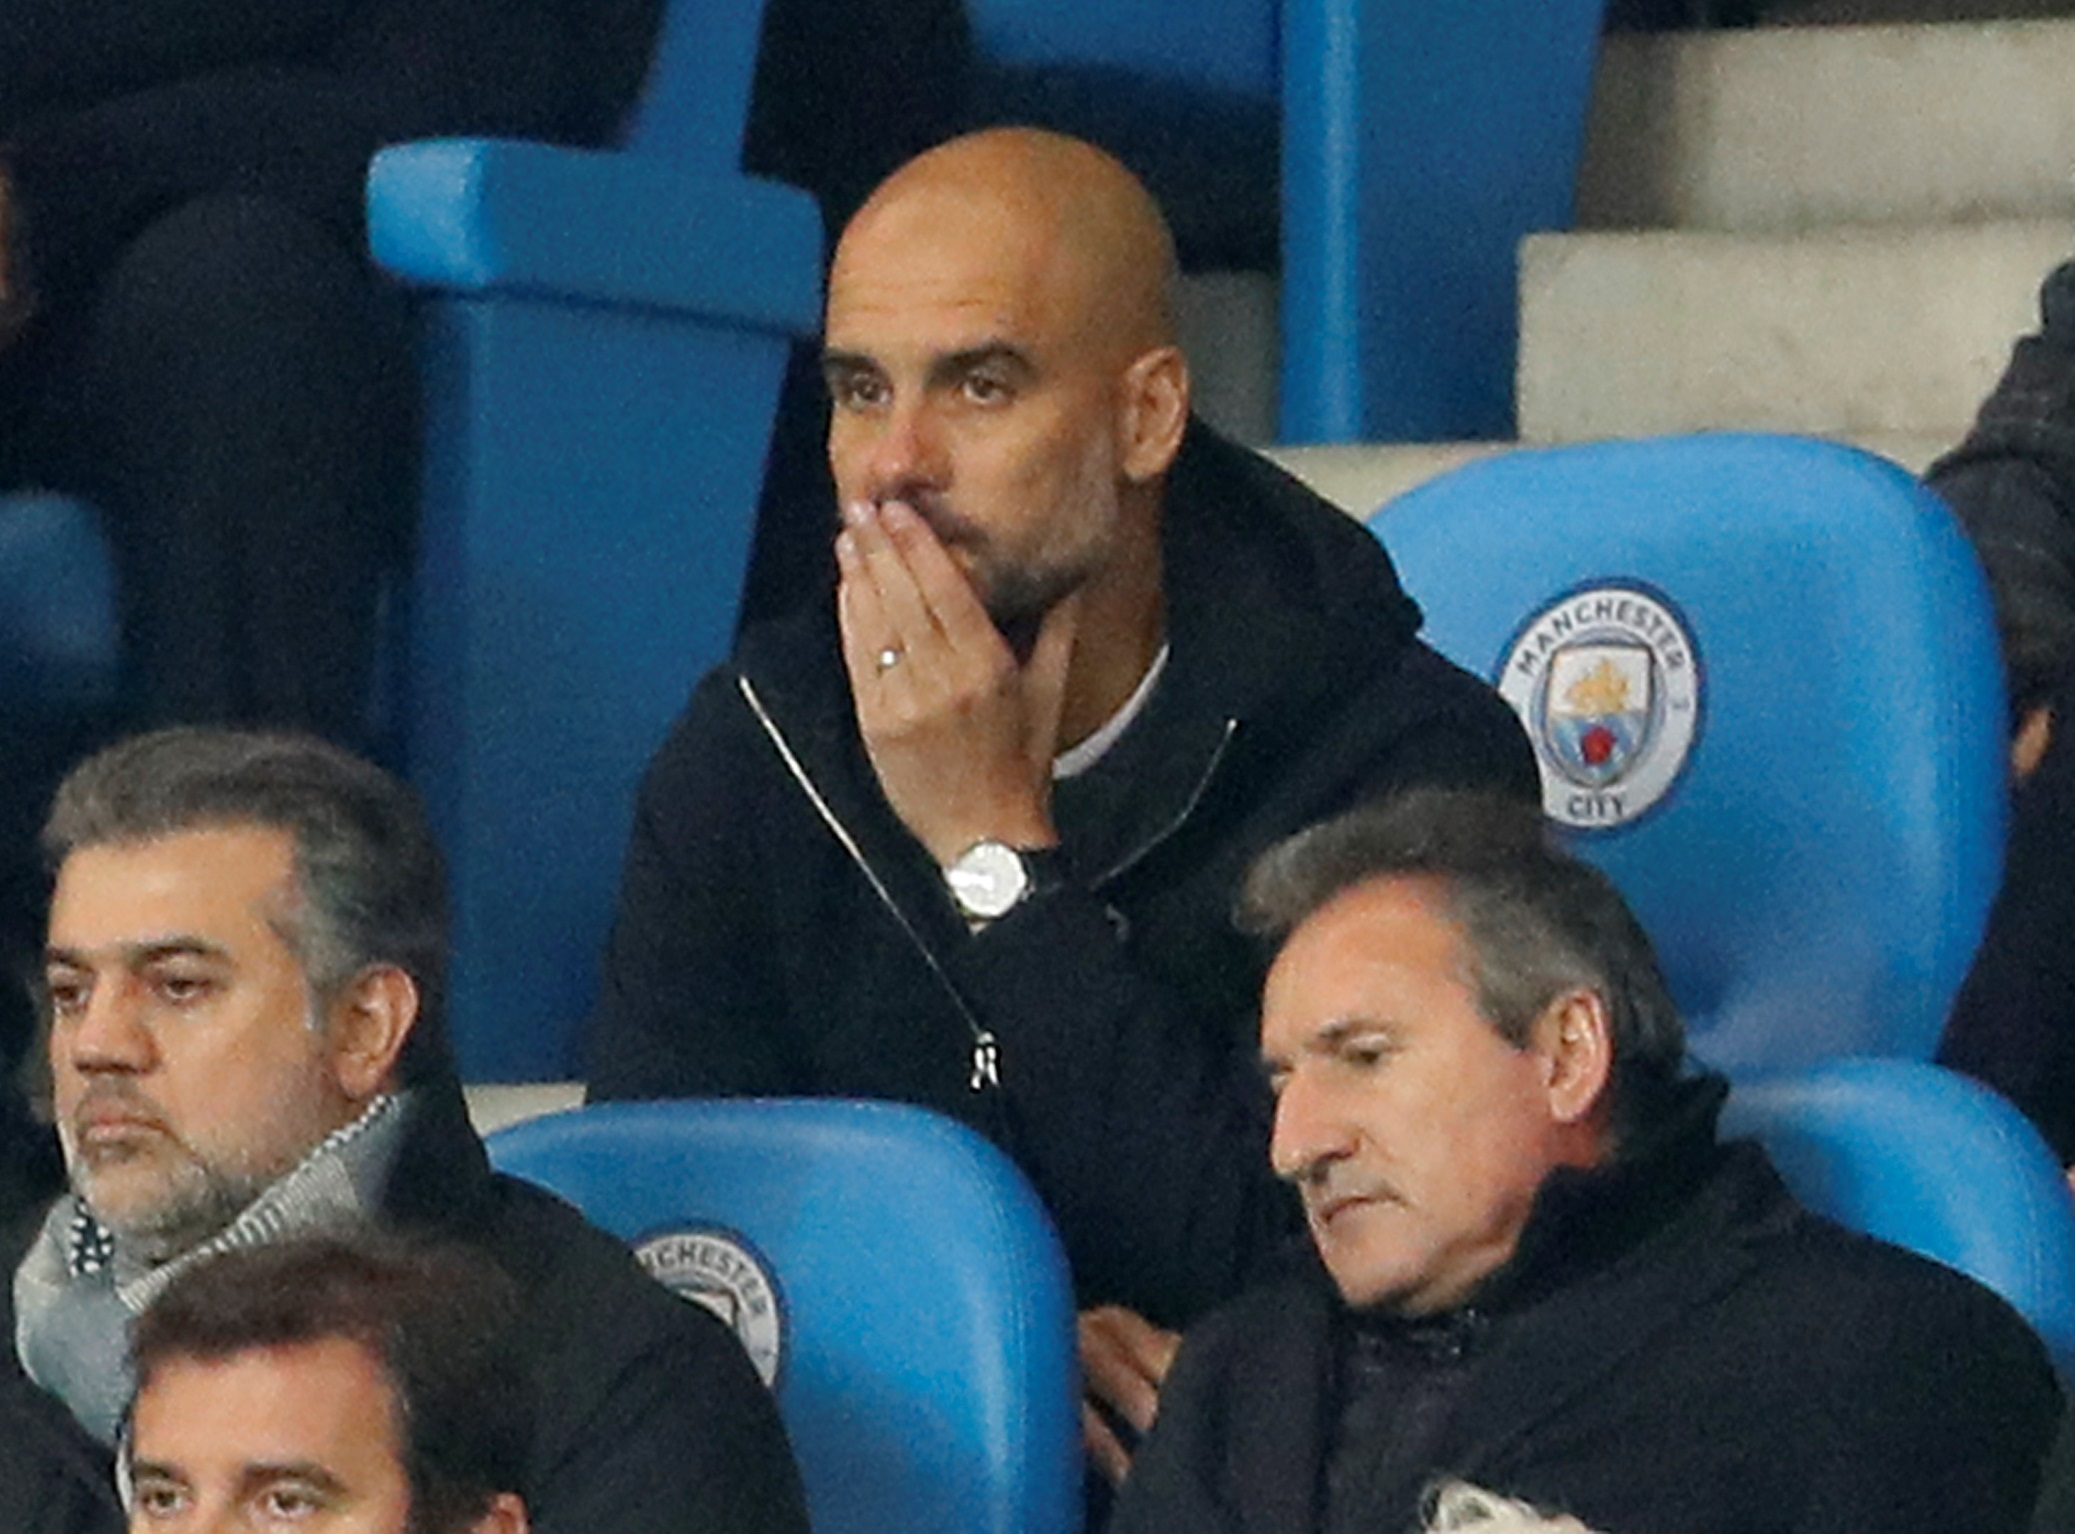 Premier League - Manchester City : Pep Guardiola jusqu'en 2021